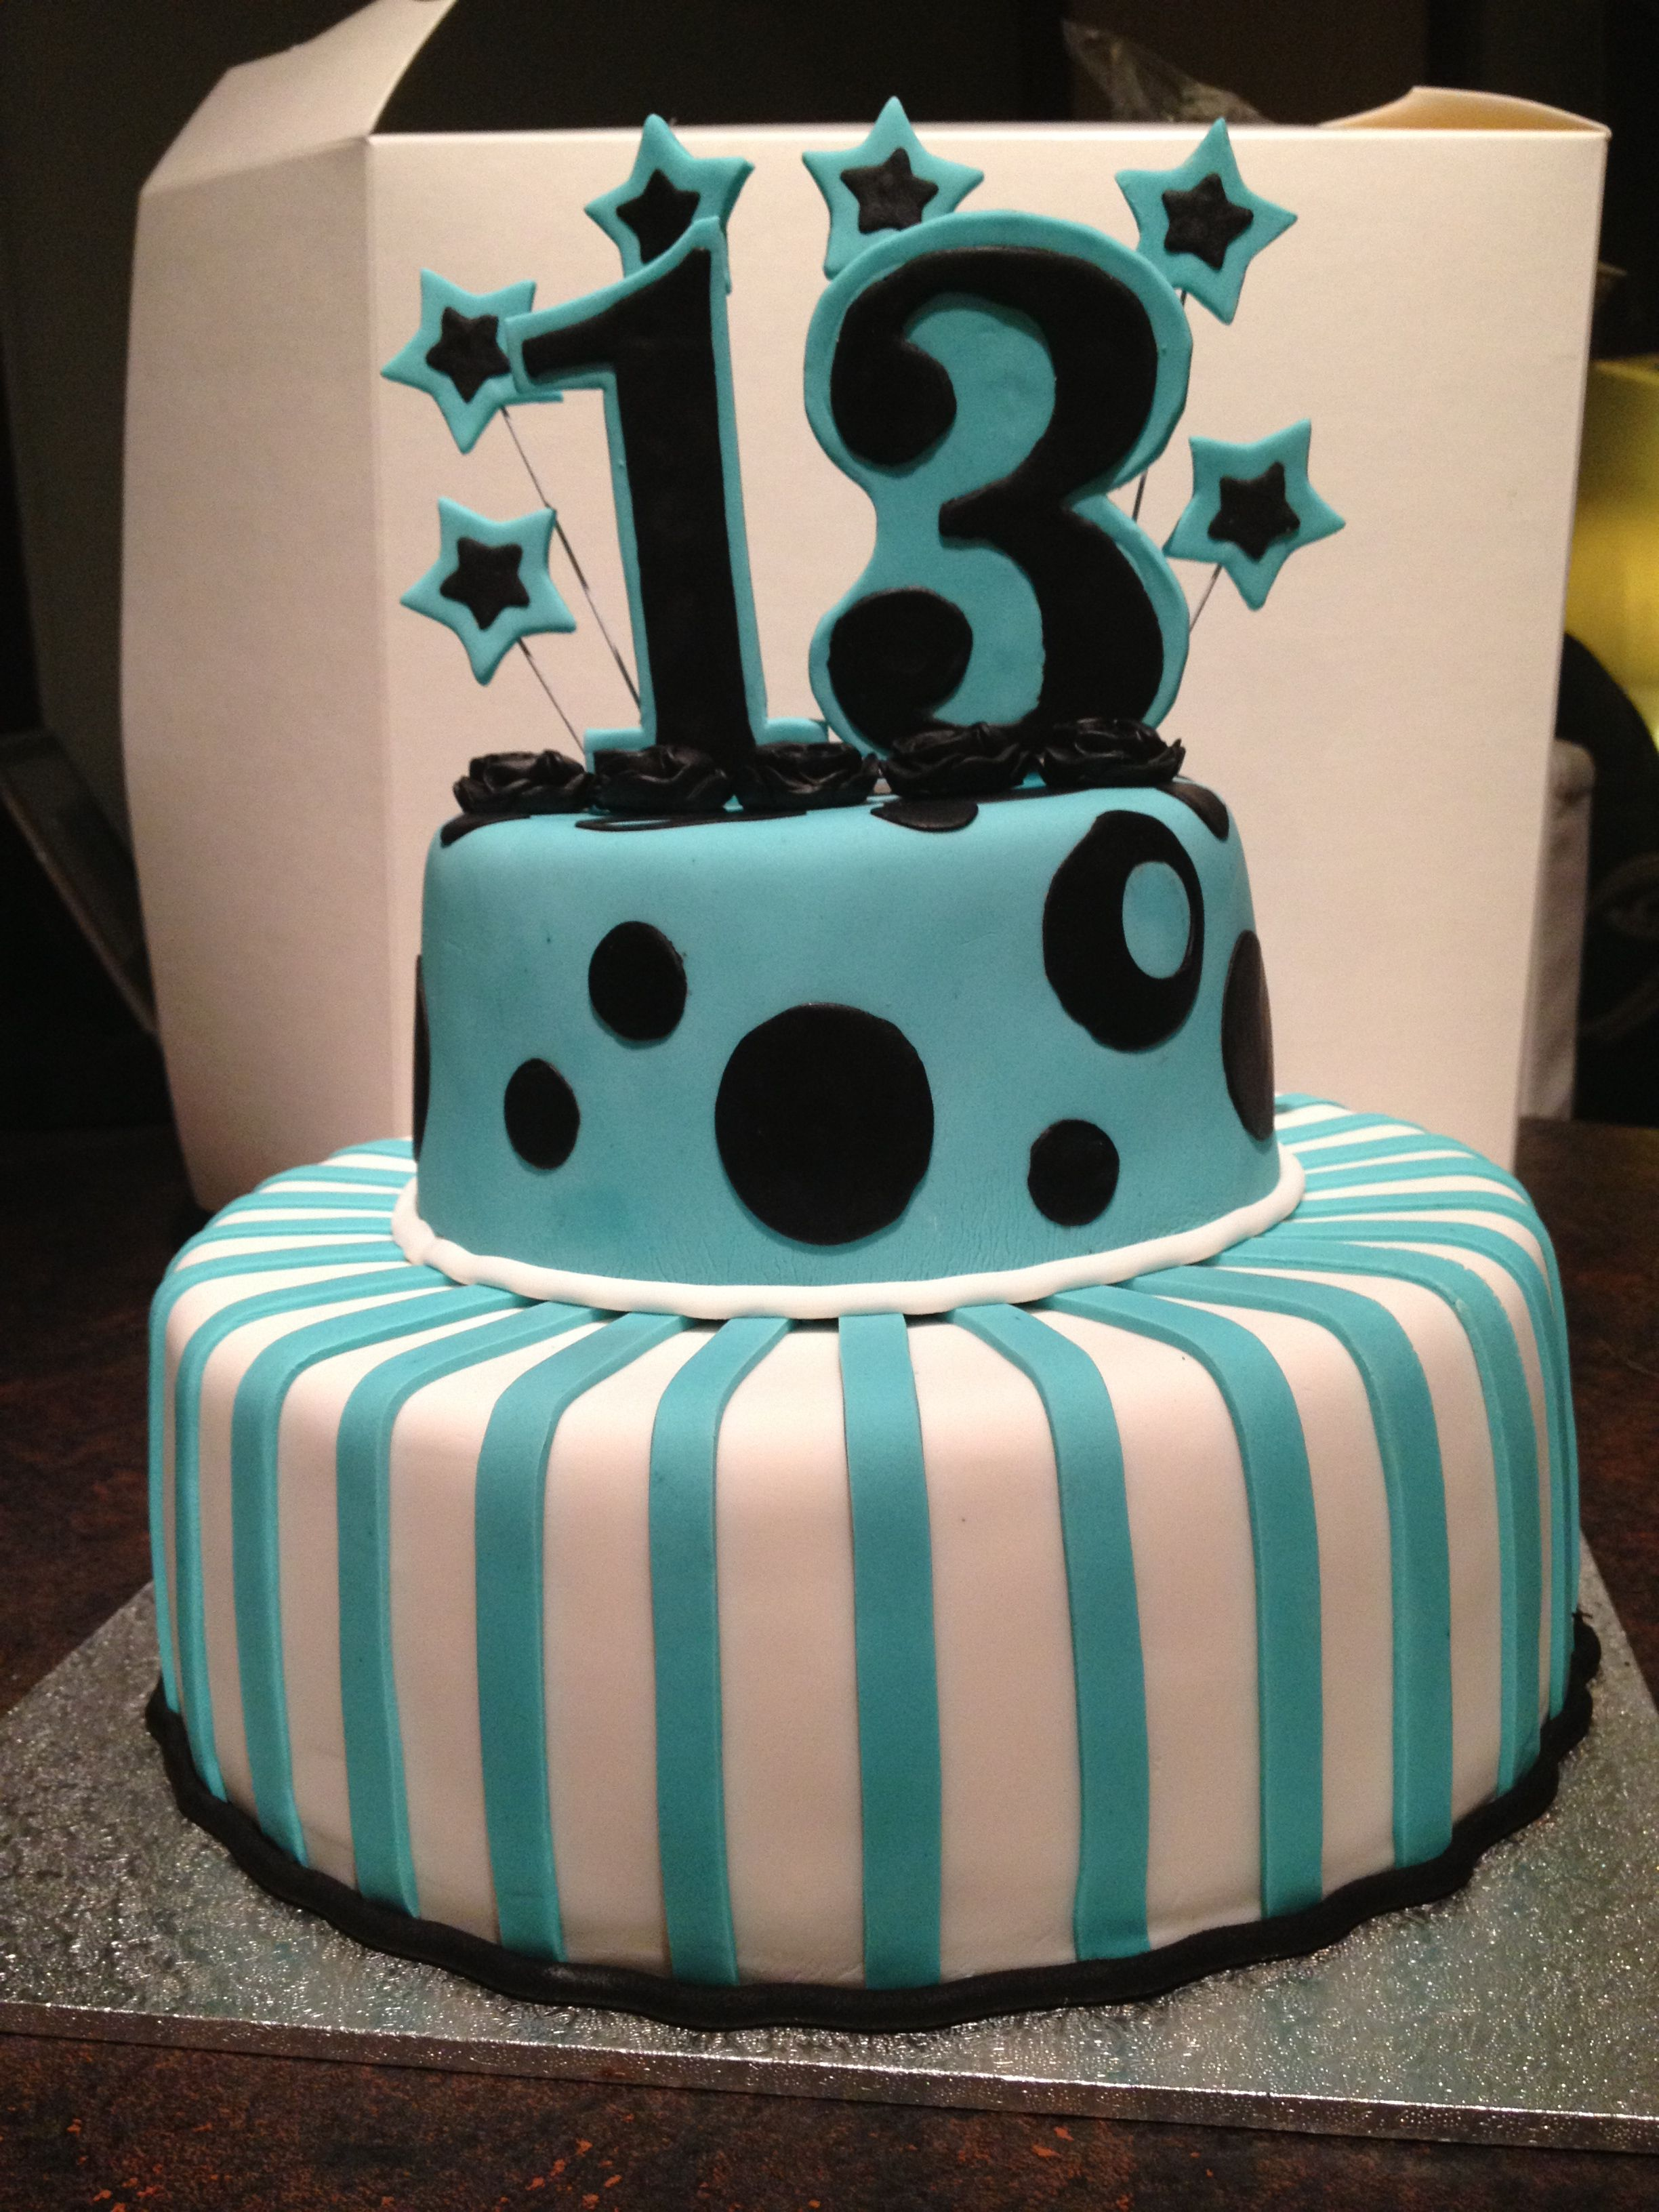 Teal White Black 13th Birthday Cake Ideas For The